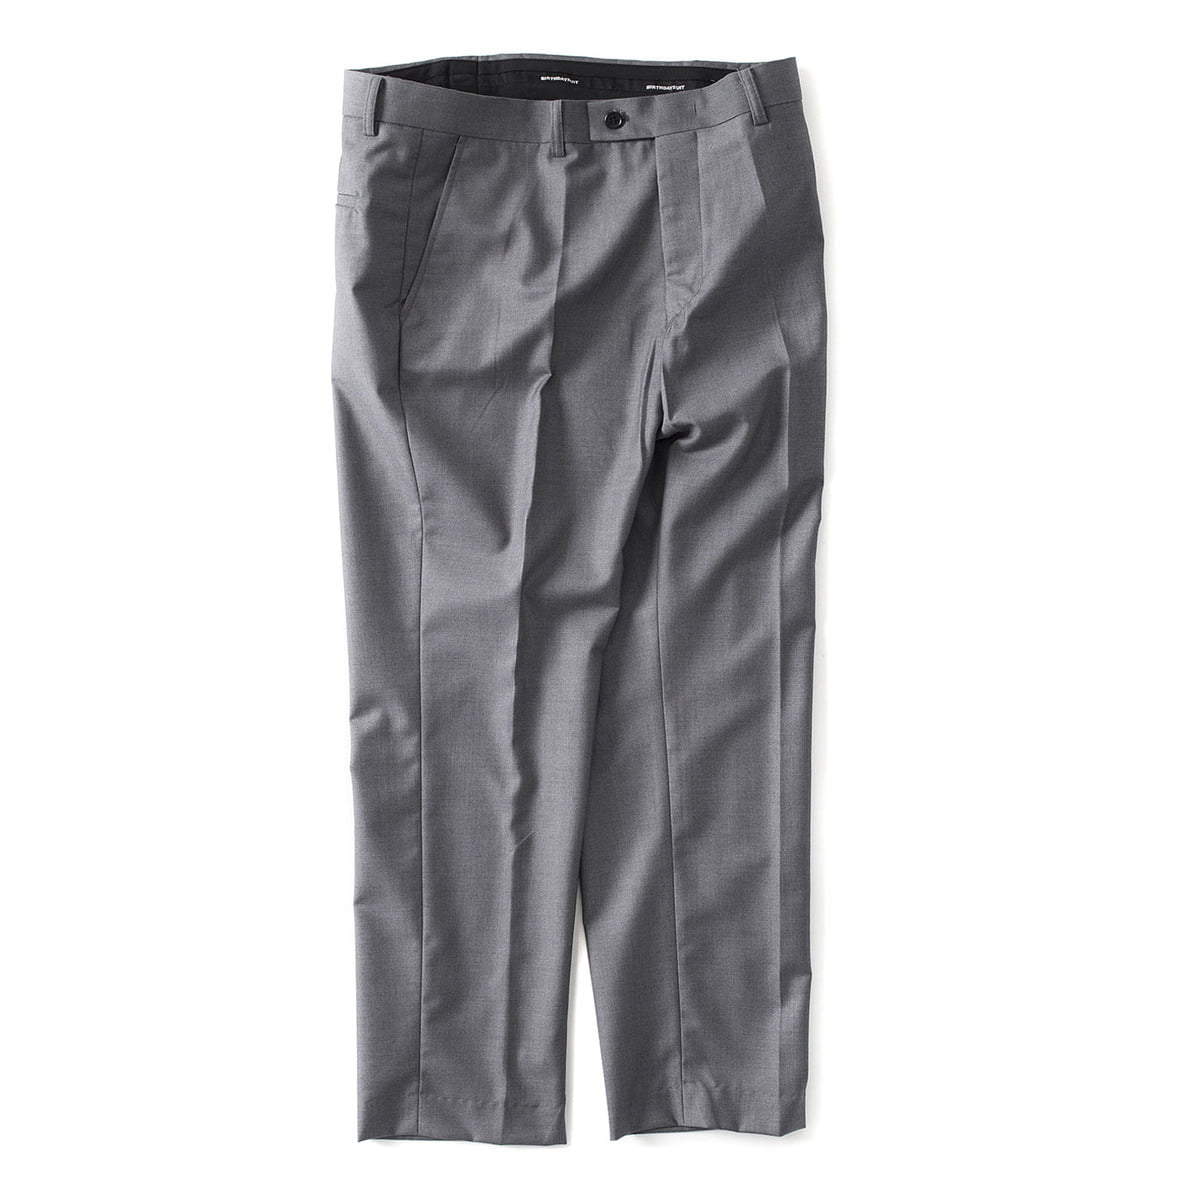 [BIRTHDAYSUIT] DAILY SUIT PANTS 'LIGHT GREY'